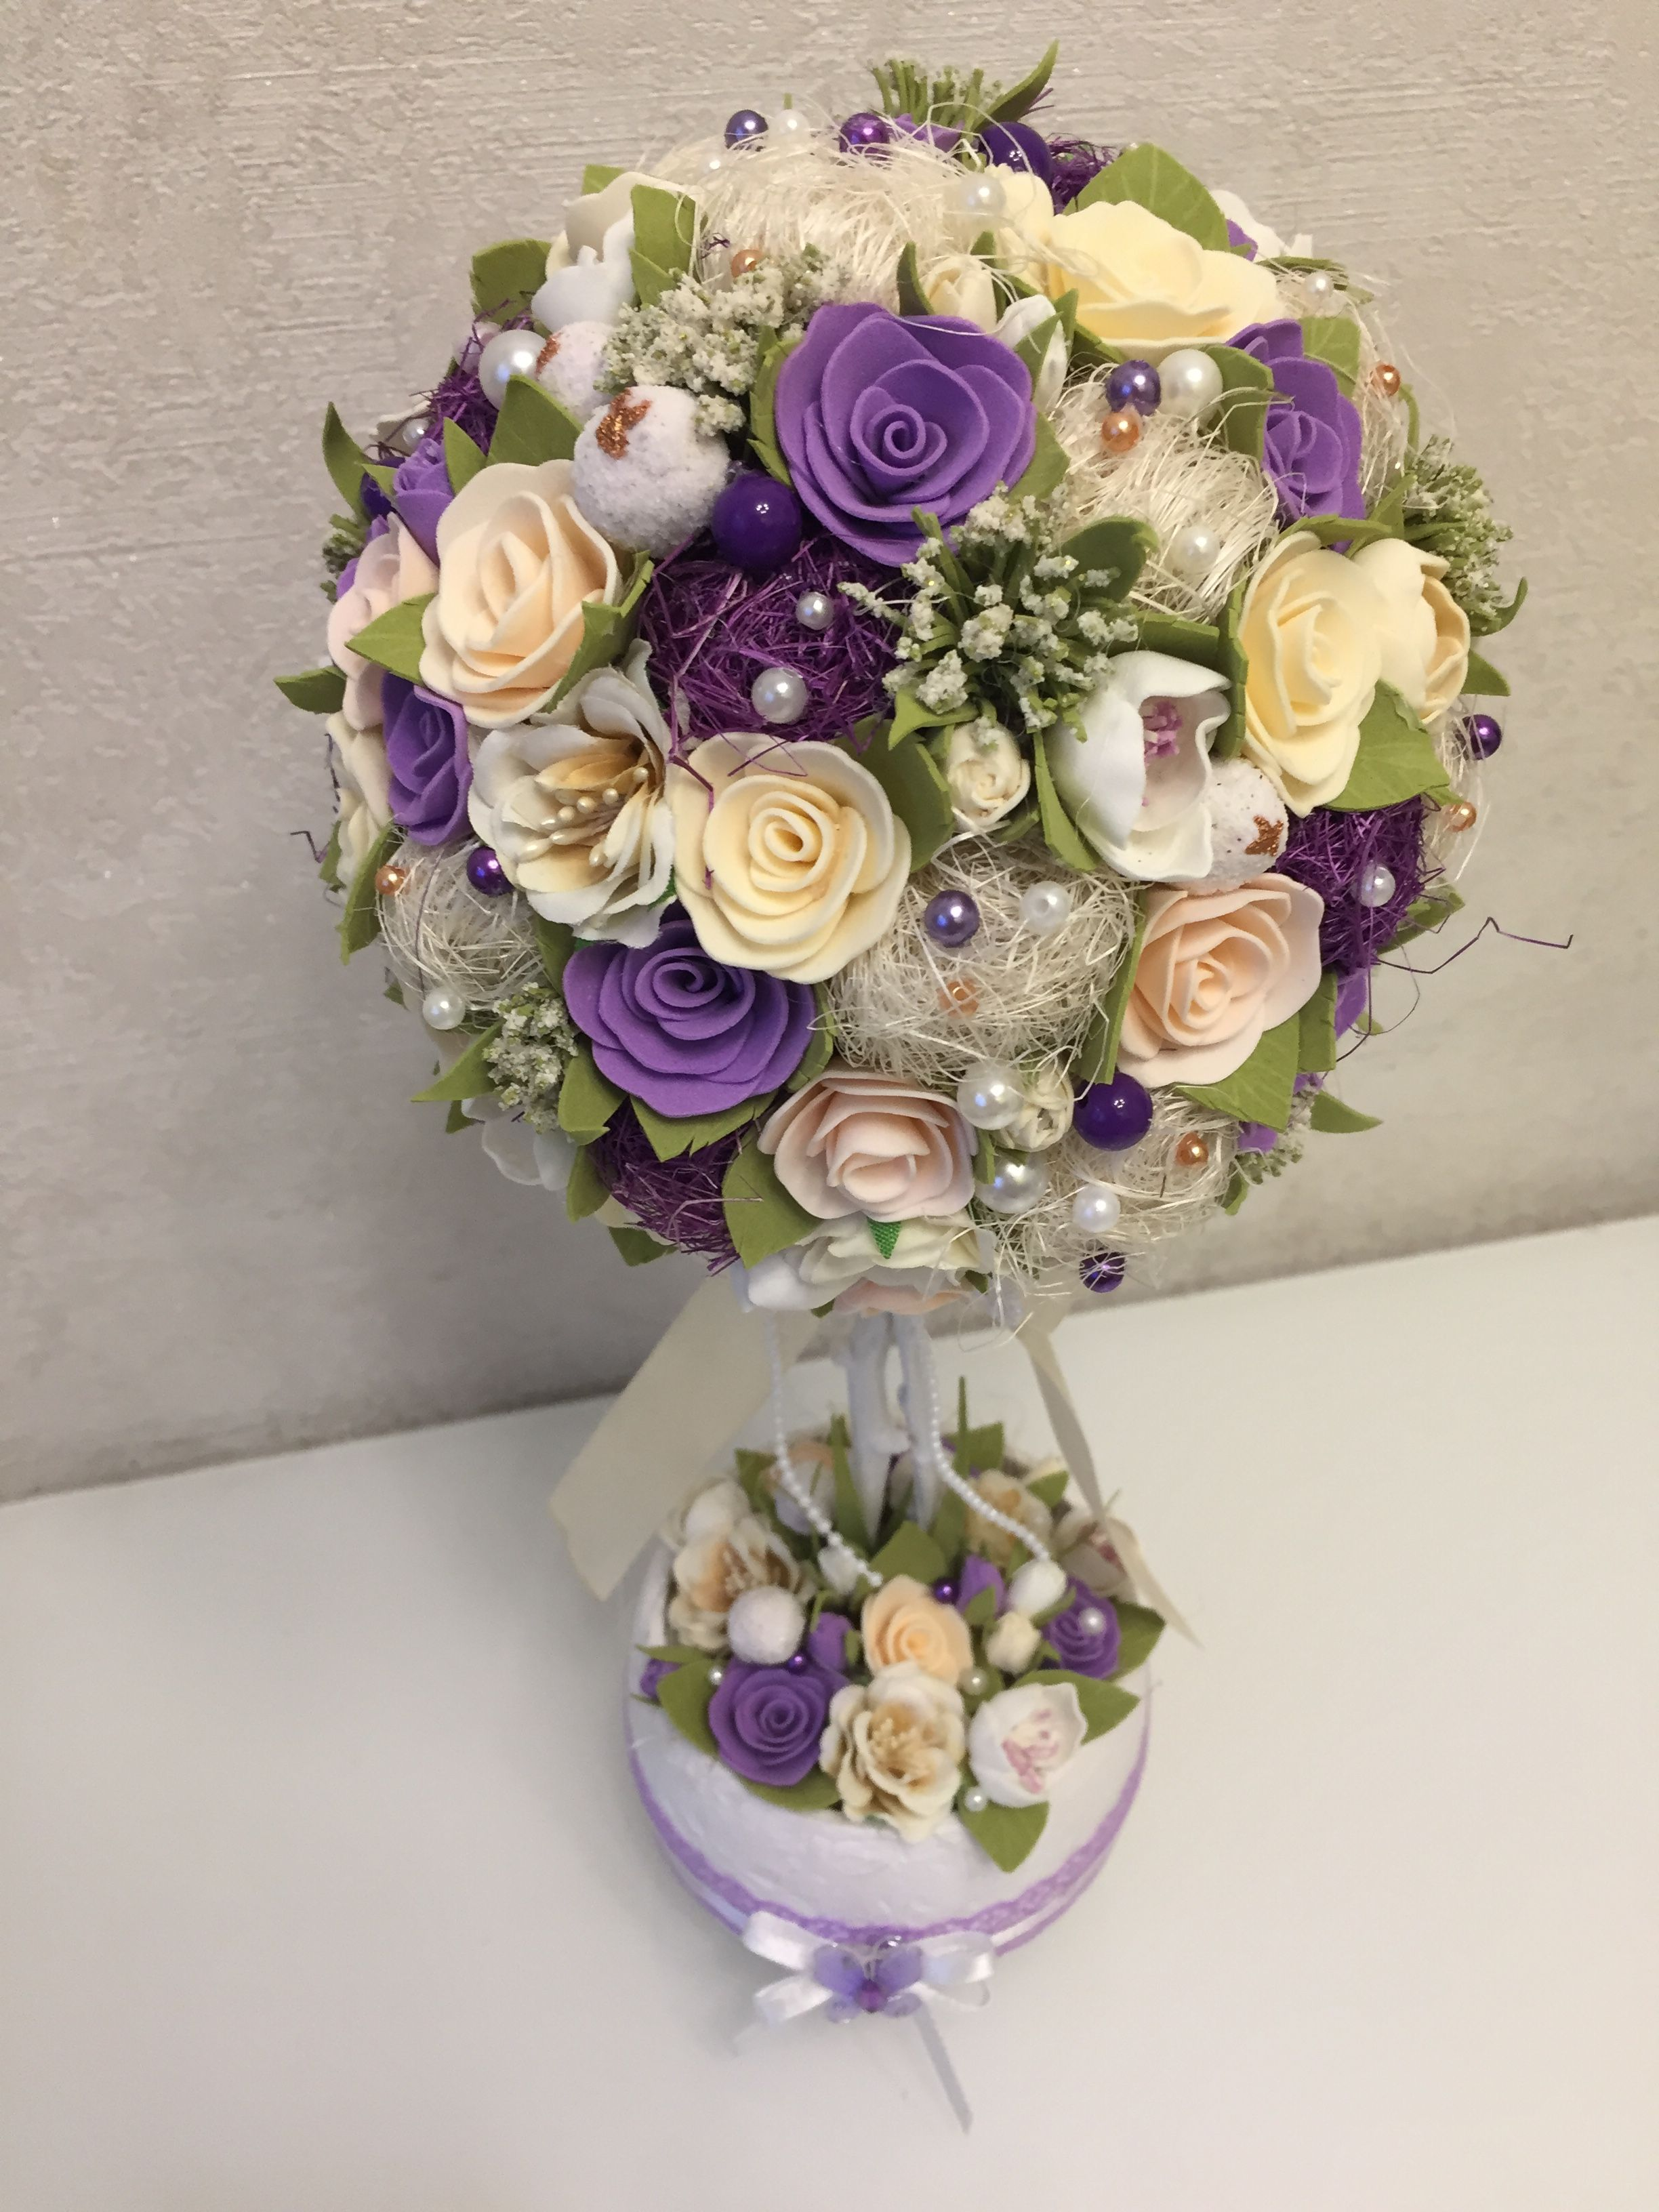 Easter wedding bouquets  Pin by Lizzyflan on Wedding flowers  Pinterest  Topiary Cemetery